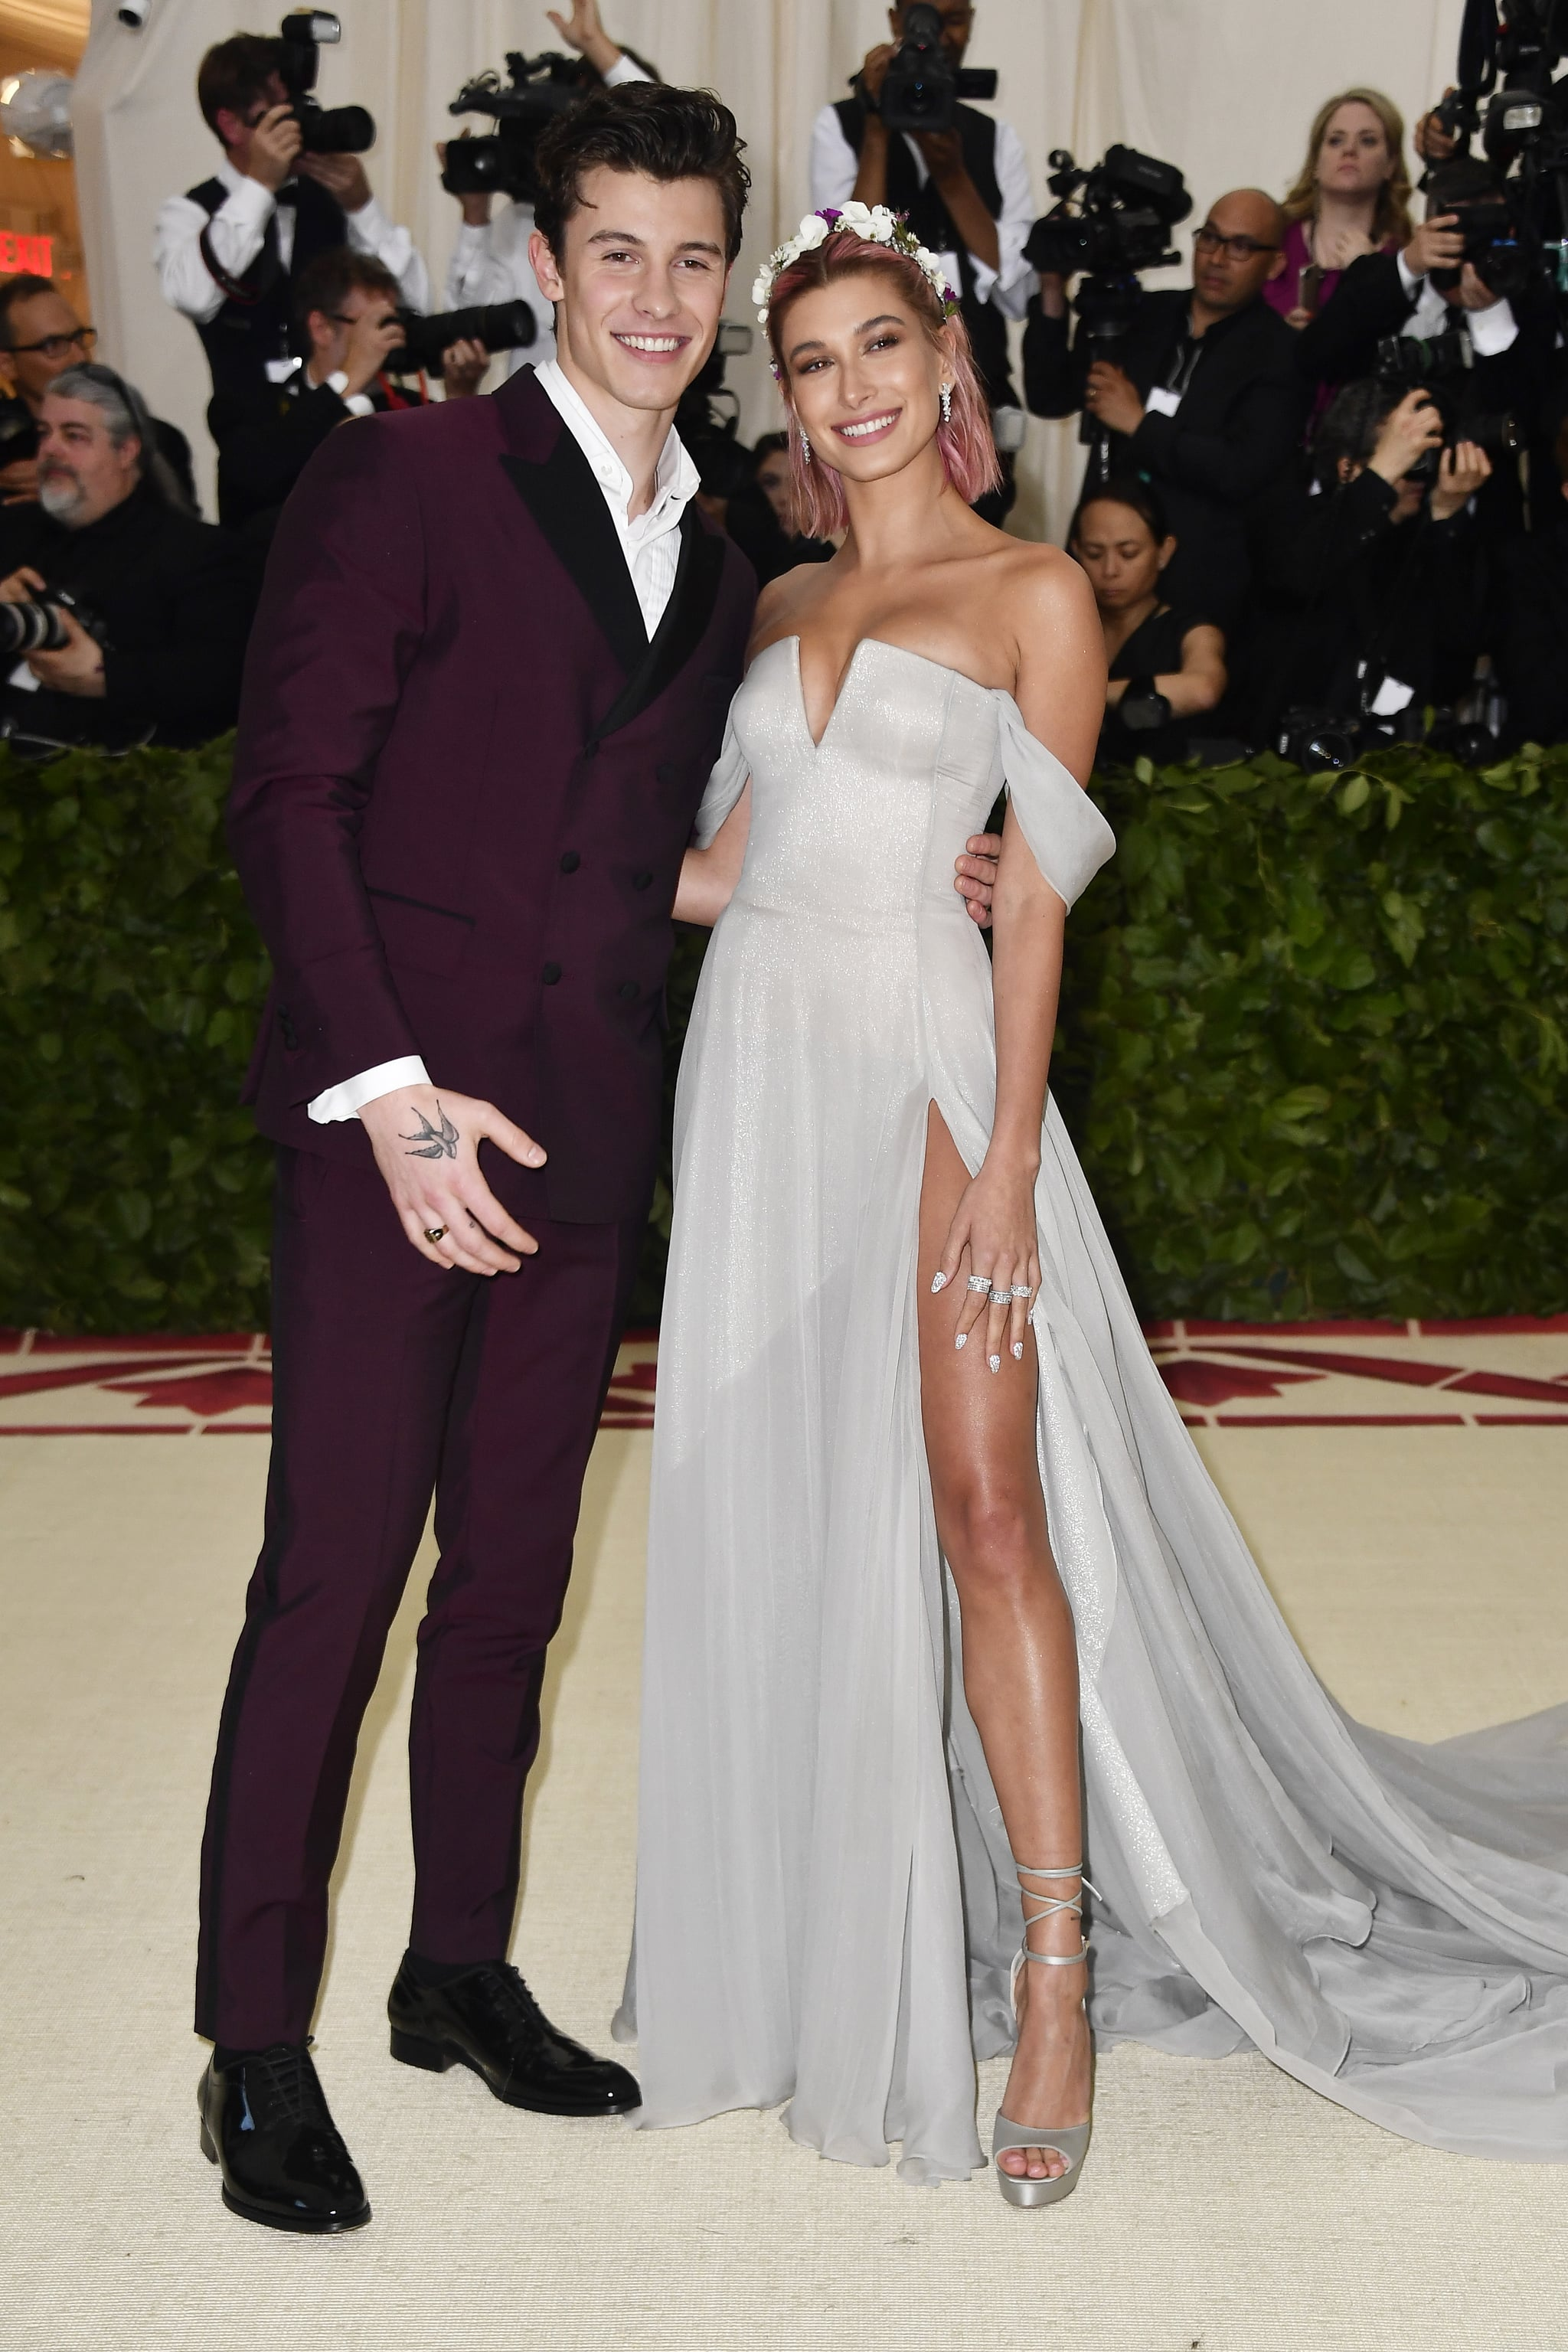 NEW YORK, NY - MAY 07: Shawn Mendes and Hailey Baldwin attend the Heavenly Bodies: Fashion & The Catholic Imagination Costume Institute Gala at The Metropolitan Museum of Art on May 7, 2018 in New York City.  (Photo by Frazer Harrison/FilmMagic)